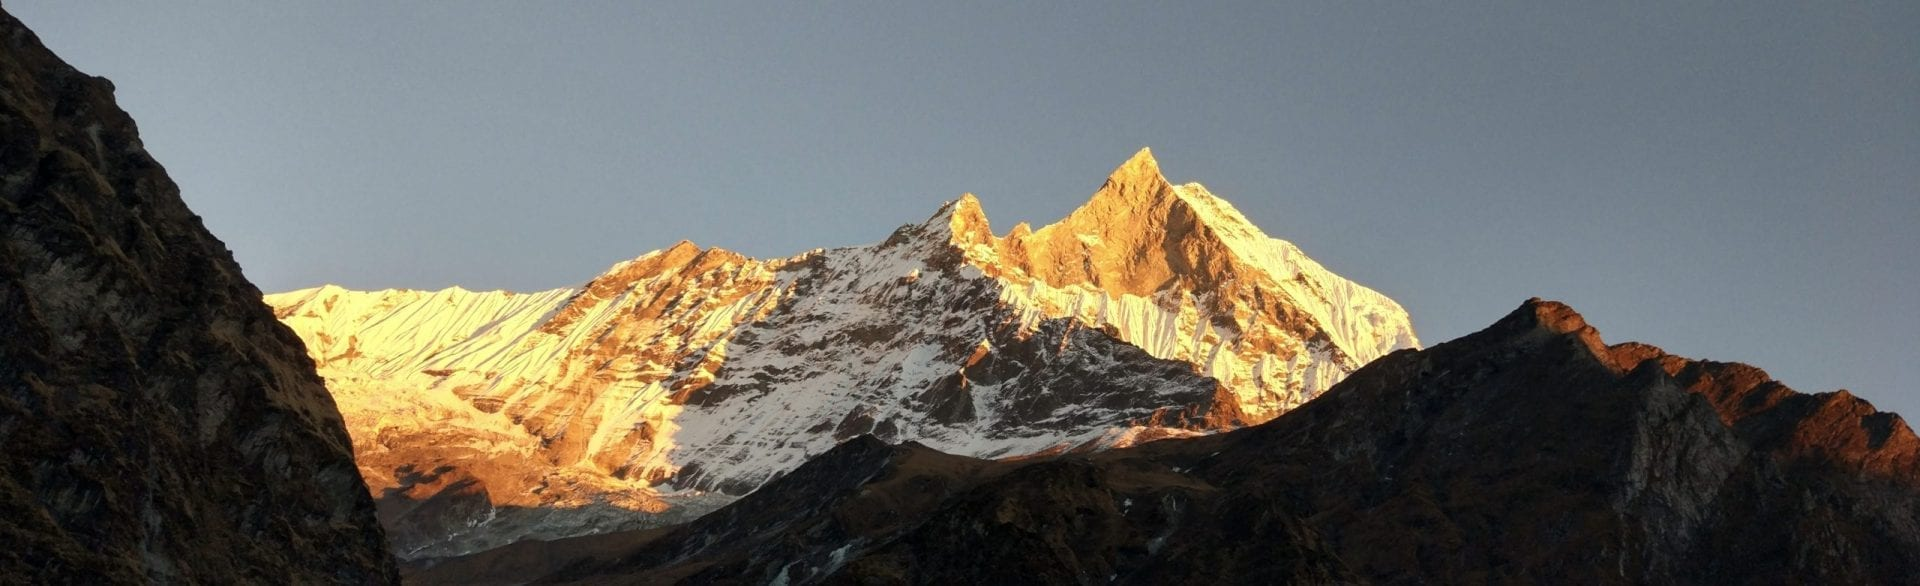 Sunset in Annapurna Mountain, Nepal